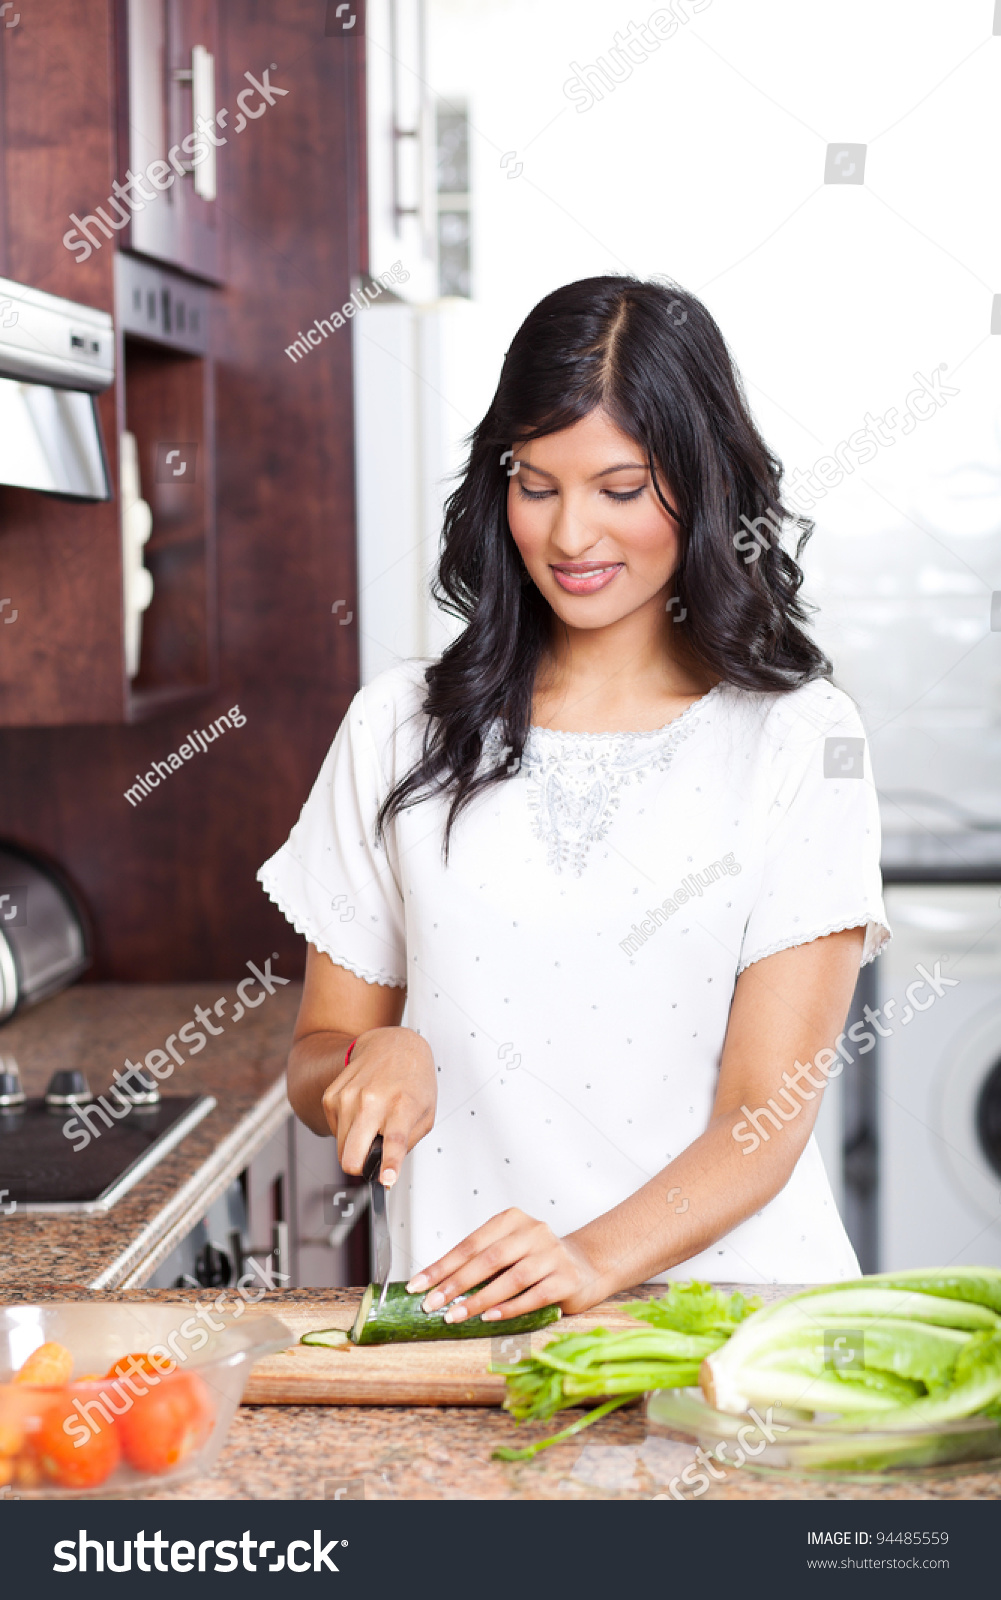 Young Indian Woman Cooking Kitchen Stock Photo (Download Now ...